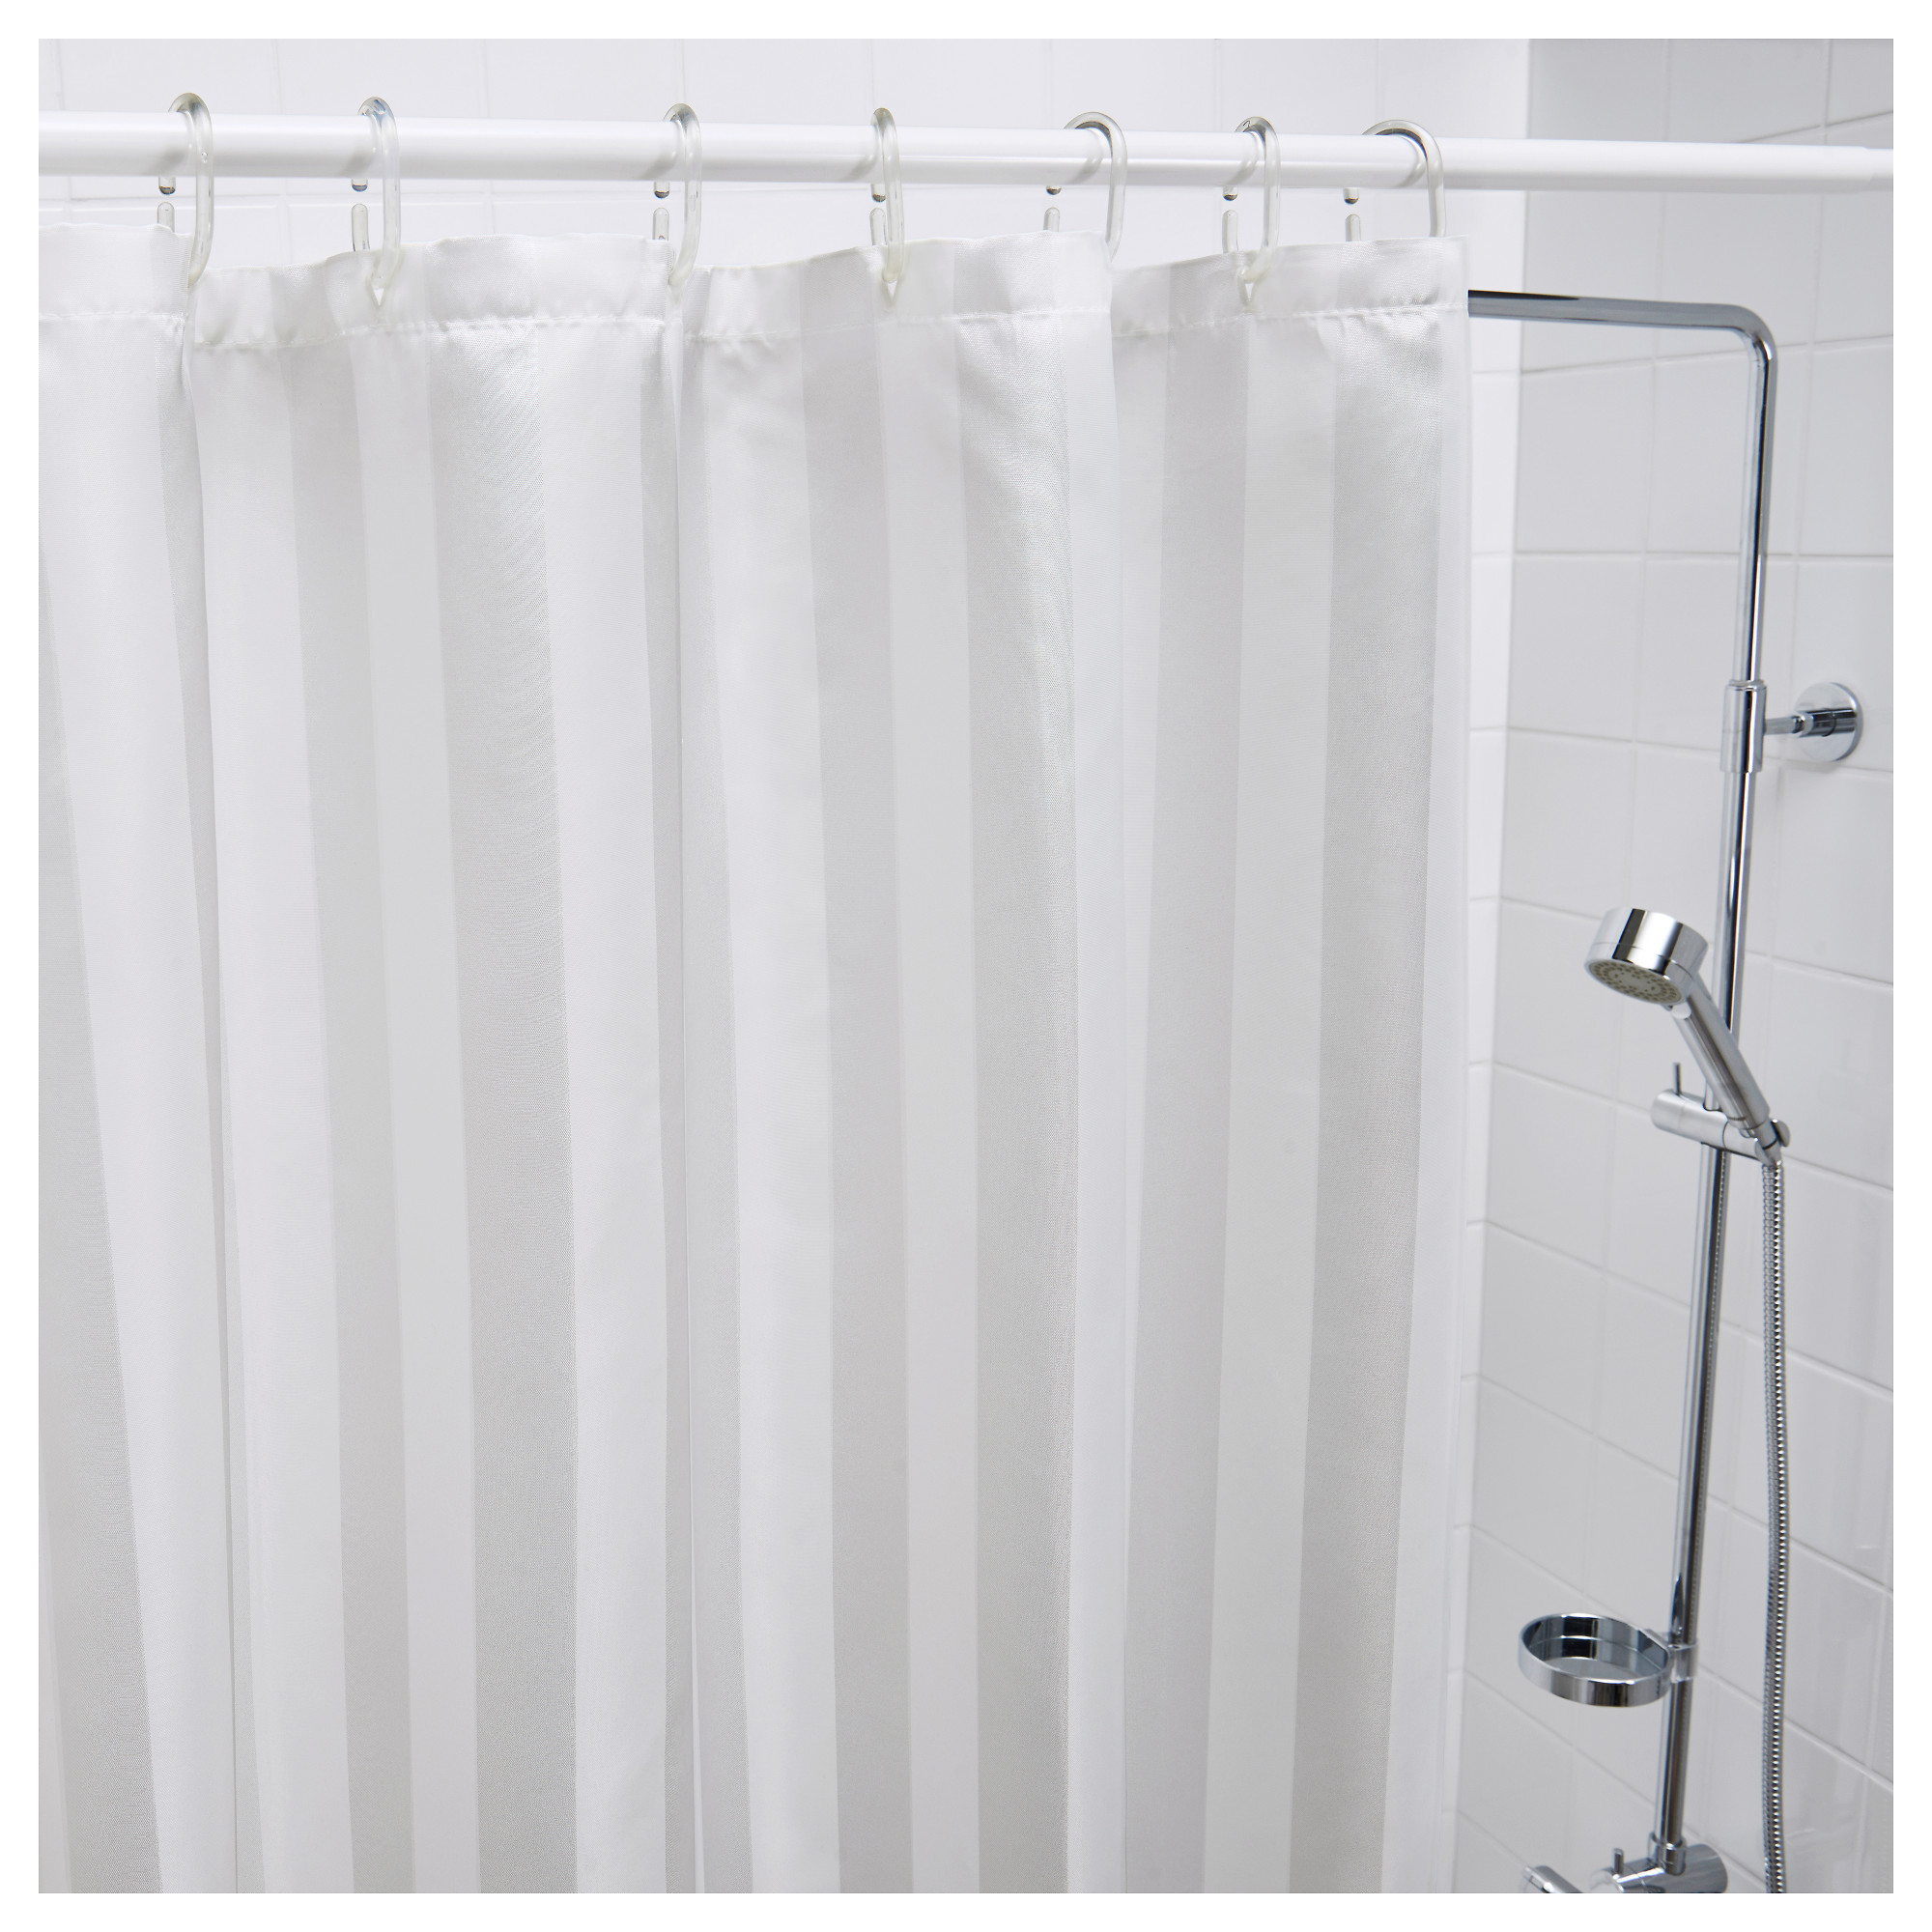 SALTGRUND Shower curtain - IKEA